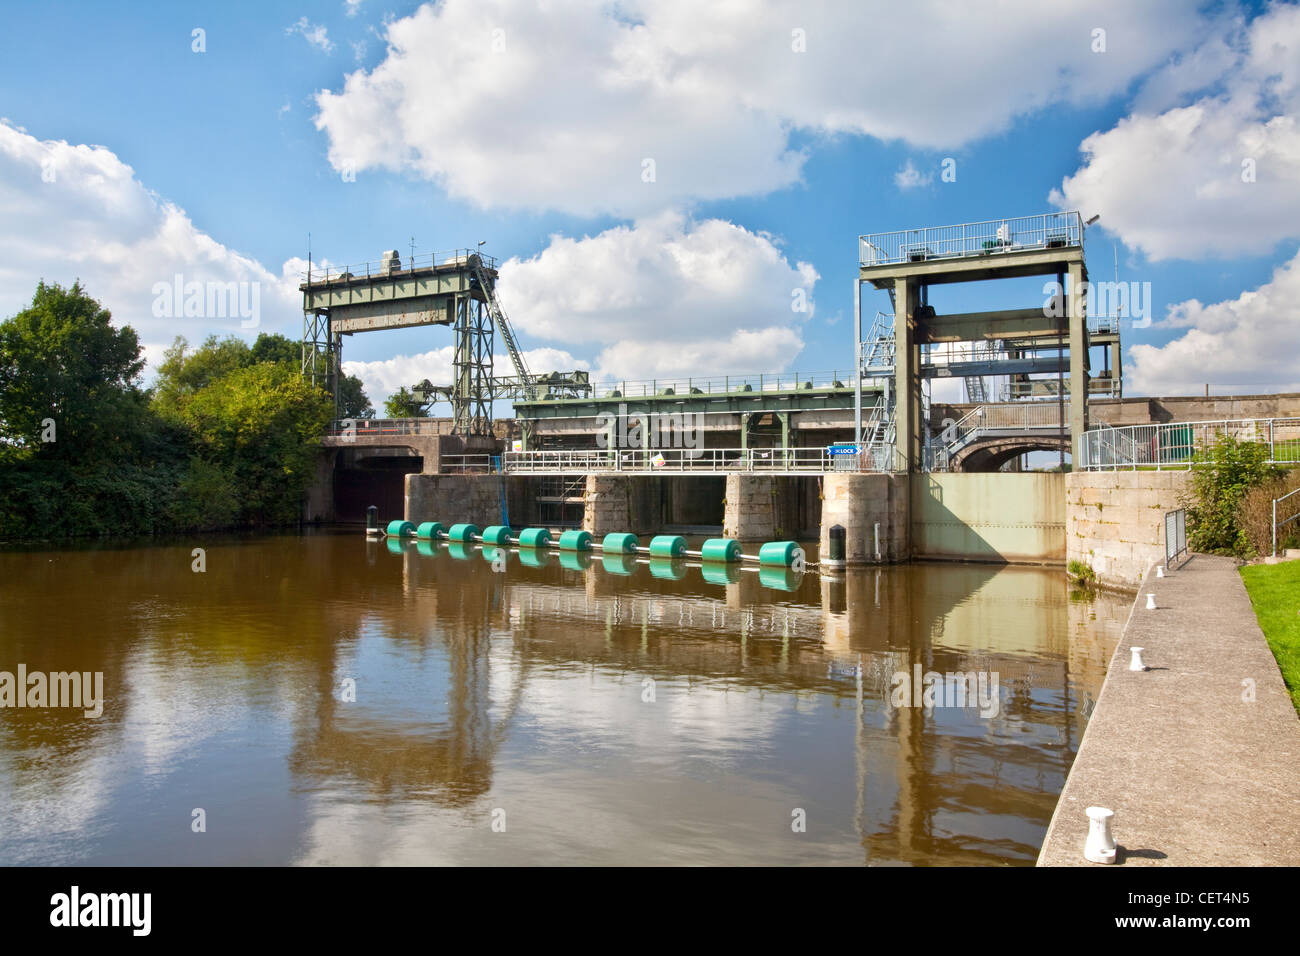 Part of the Denver Sluice on the River Great Ouse, designed to divert the tidal water into the man-made Hundred - Stock Image